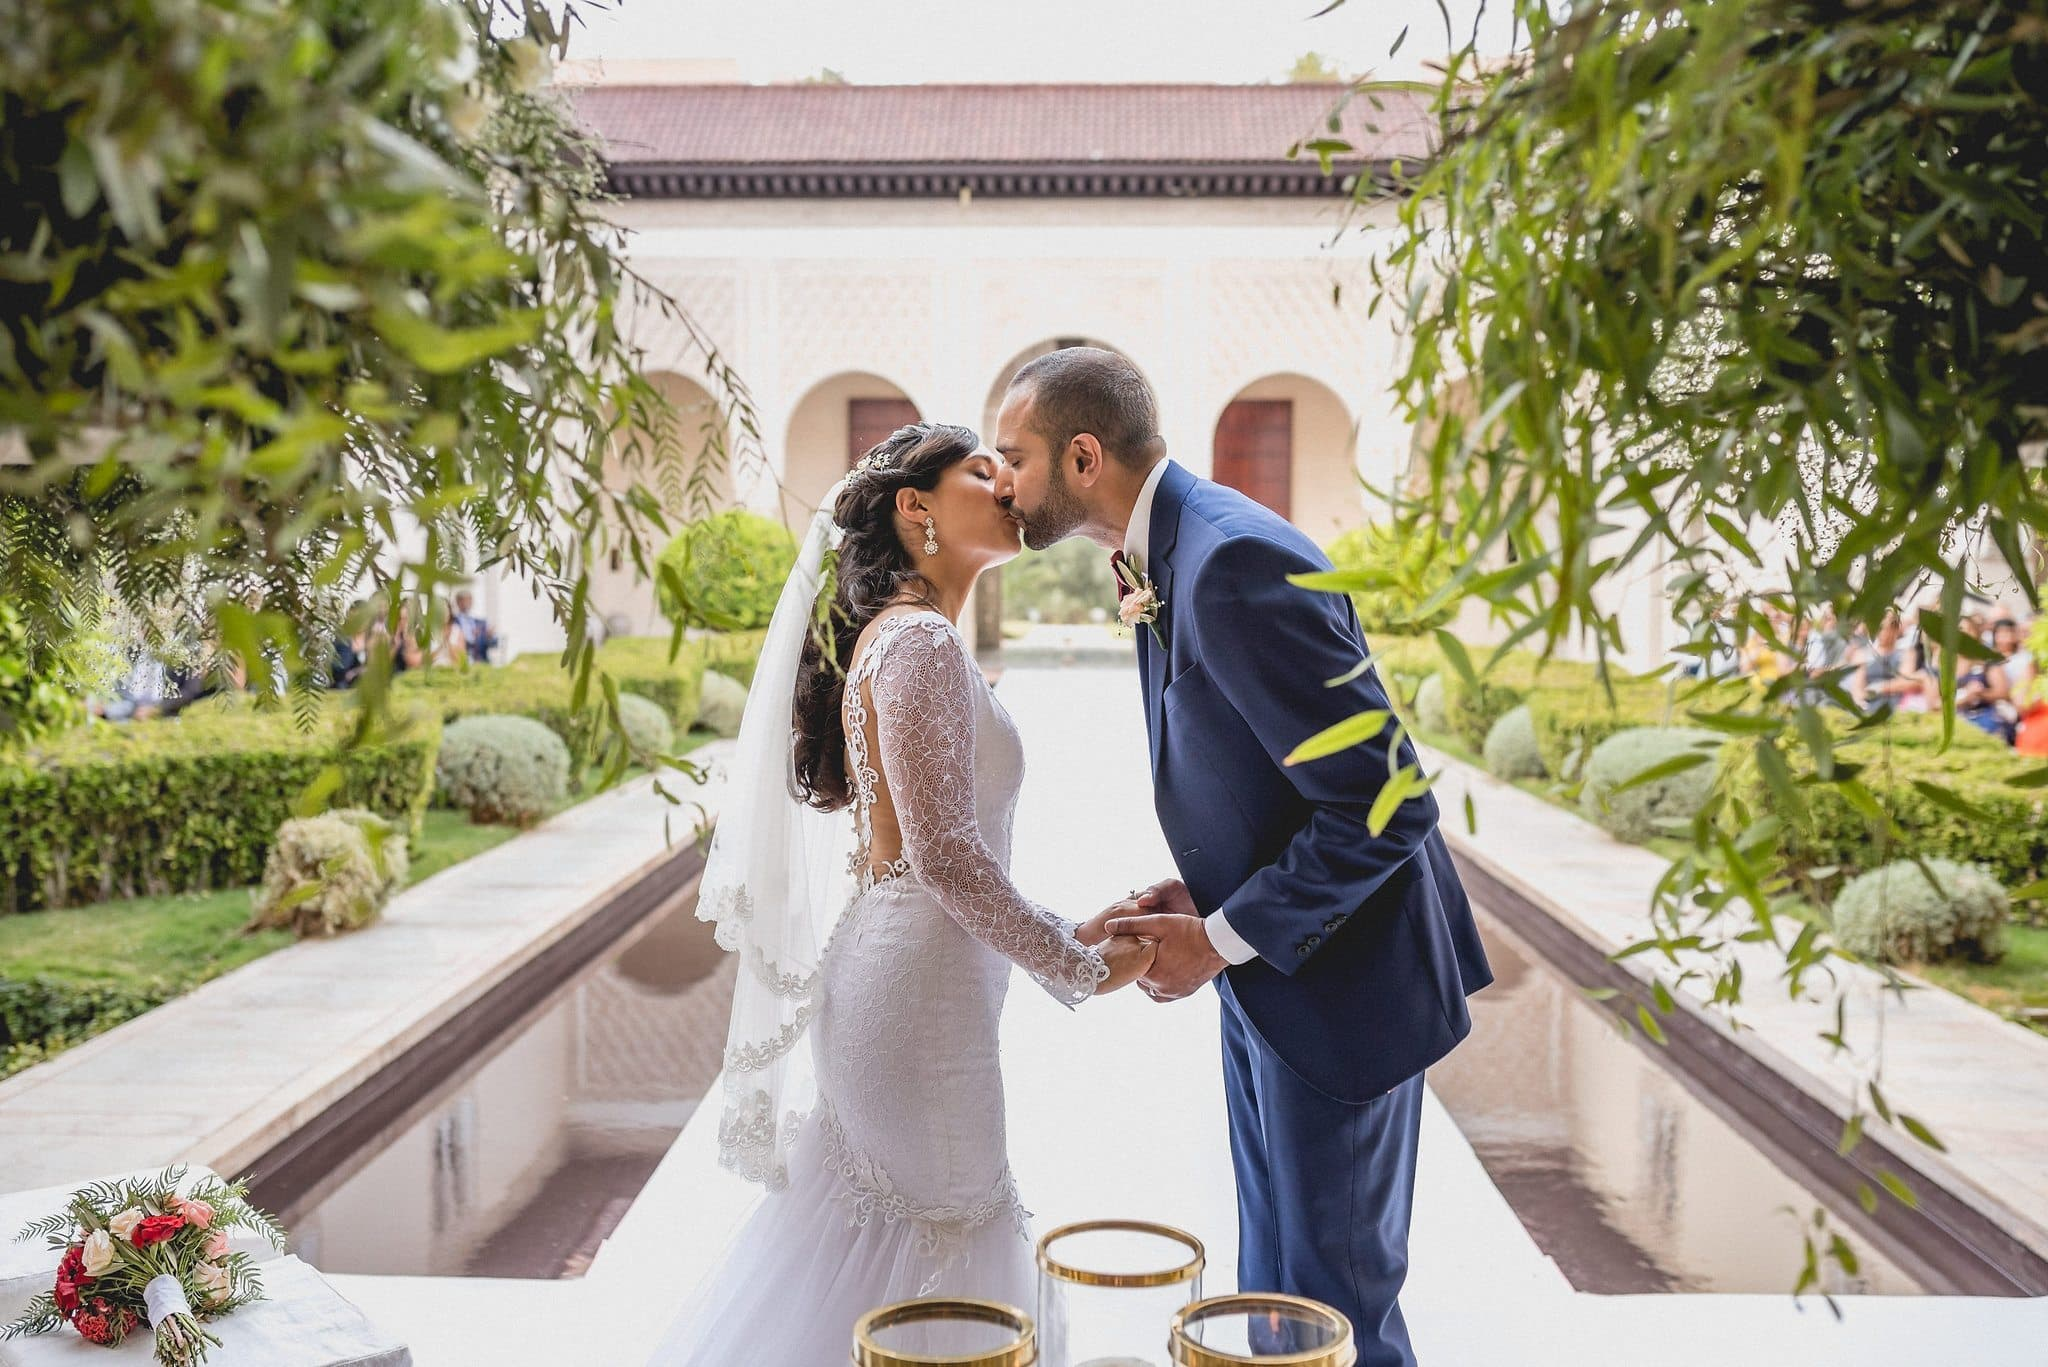 The wedding couple kiss at the end of the aisle